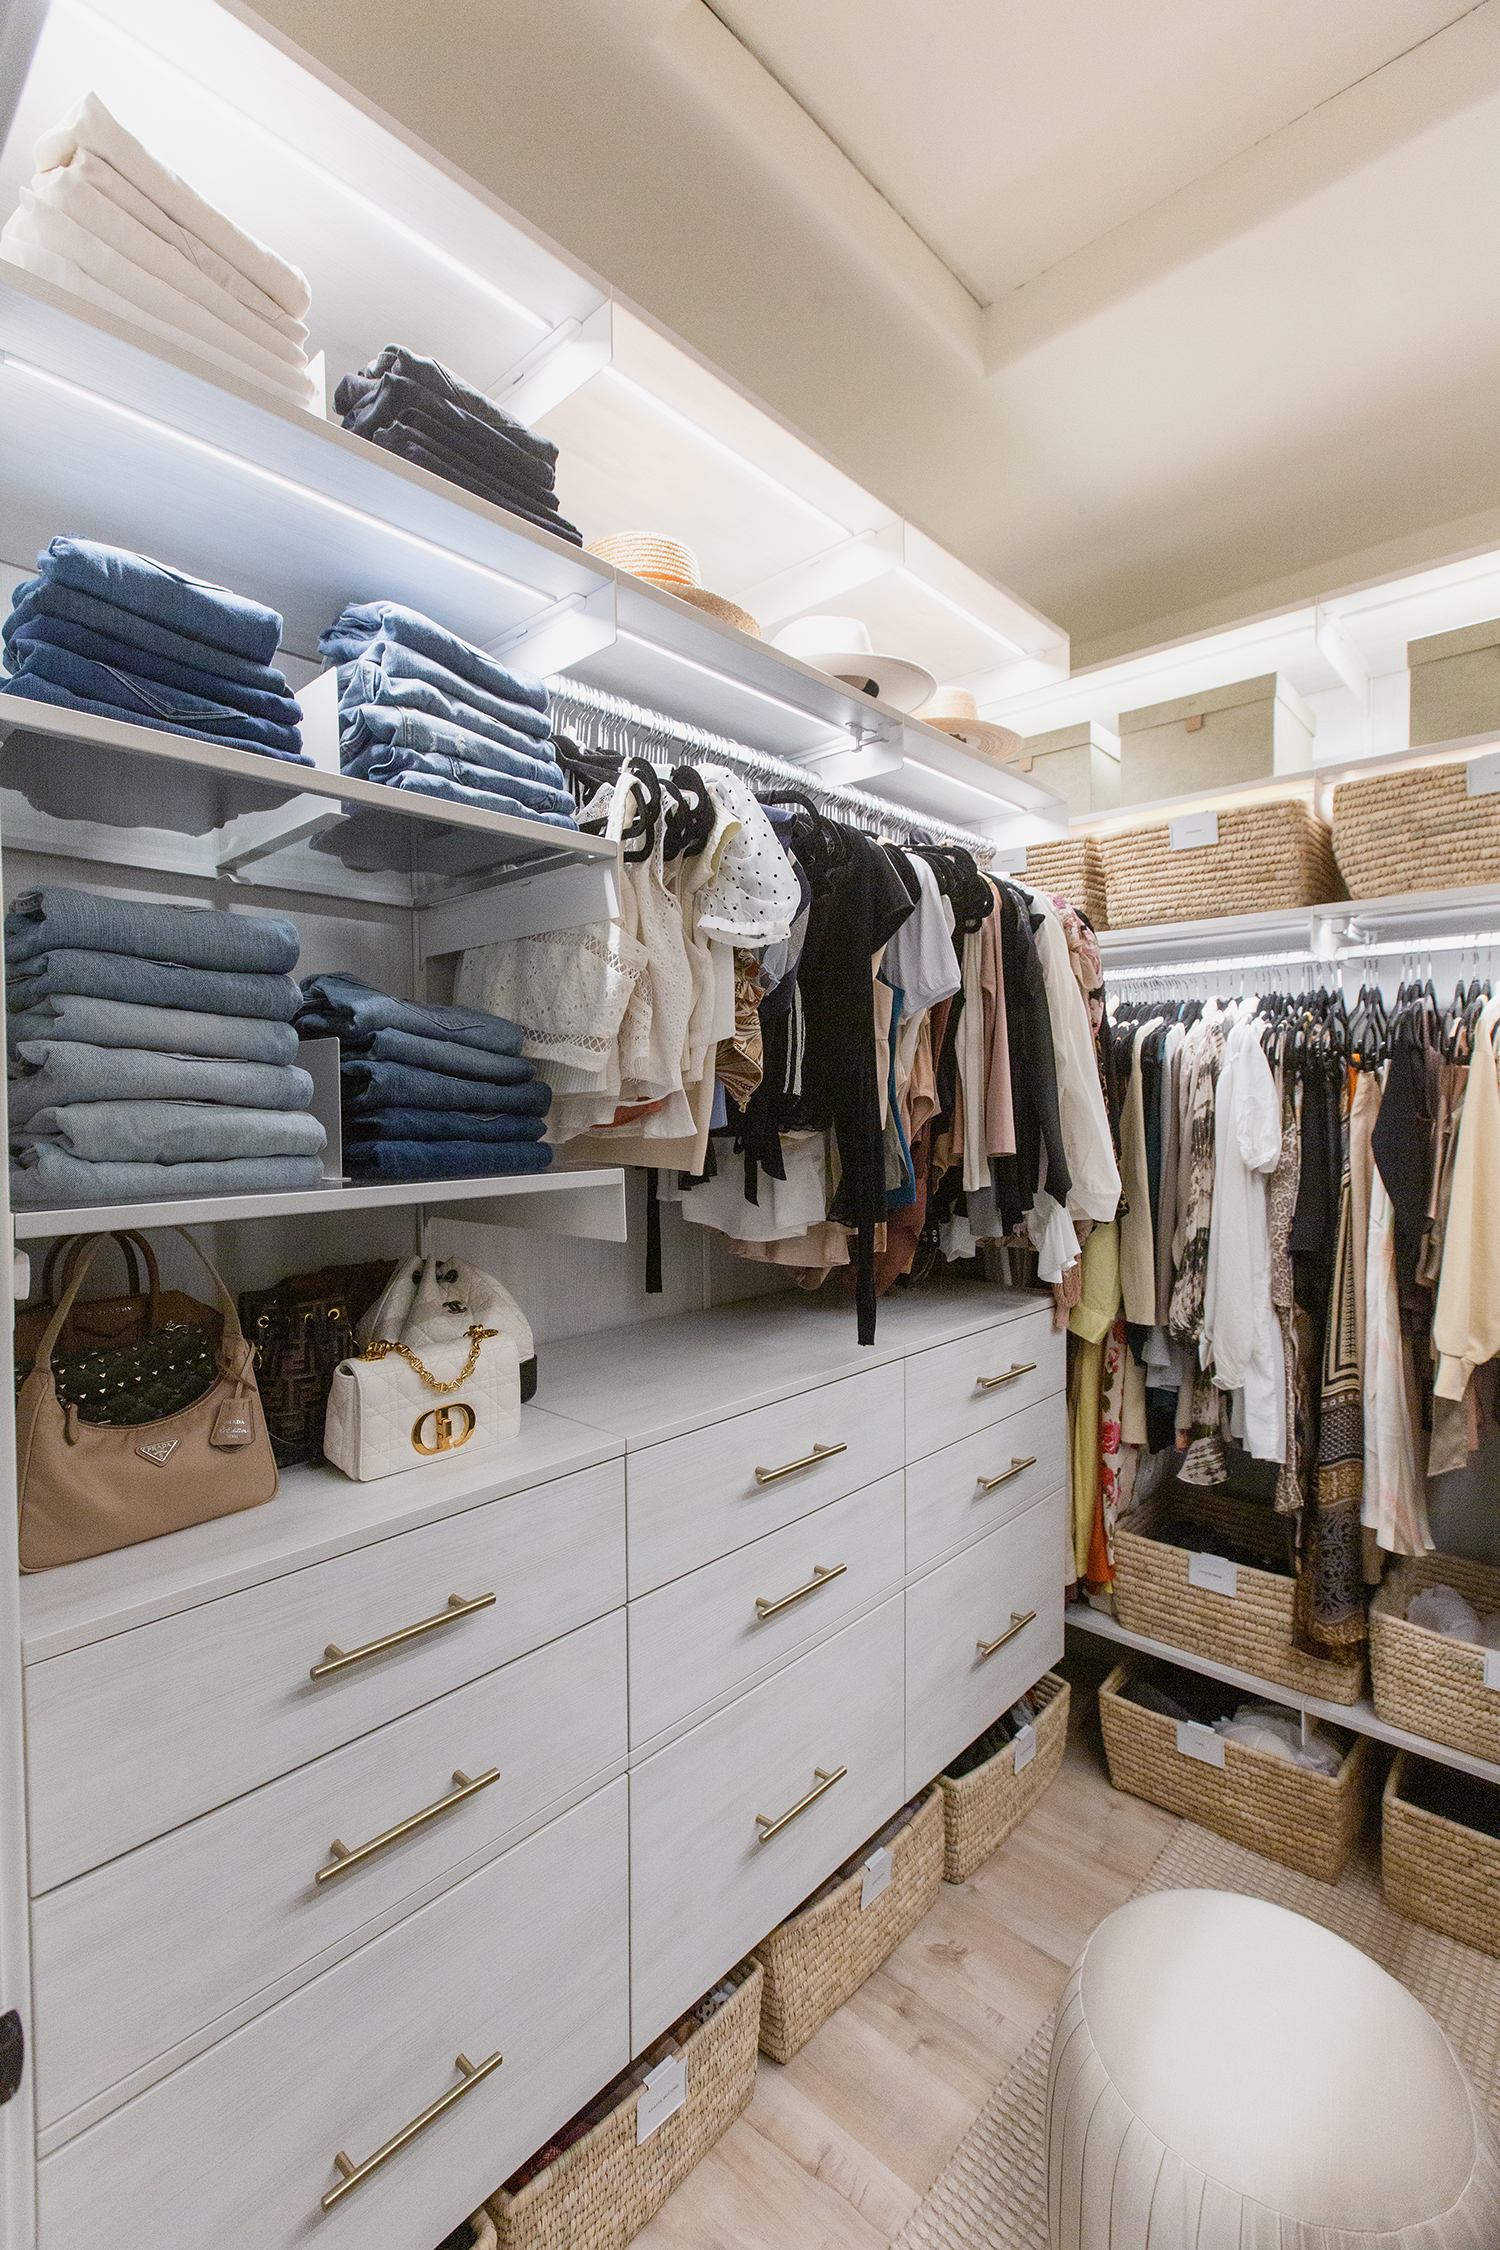 The container store avera closet system